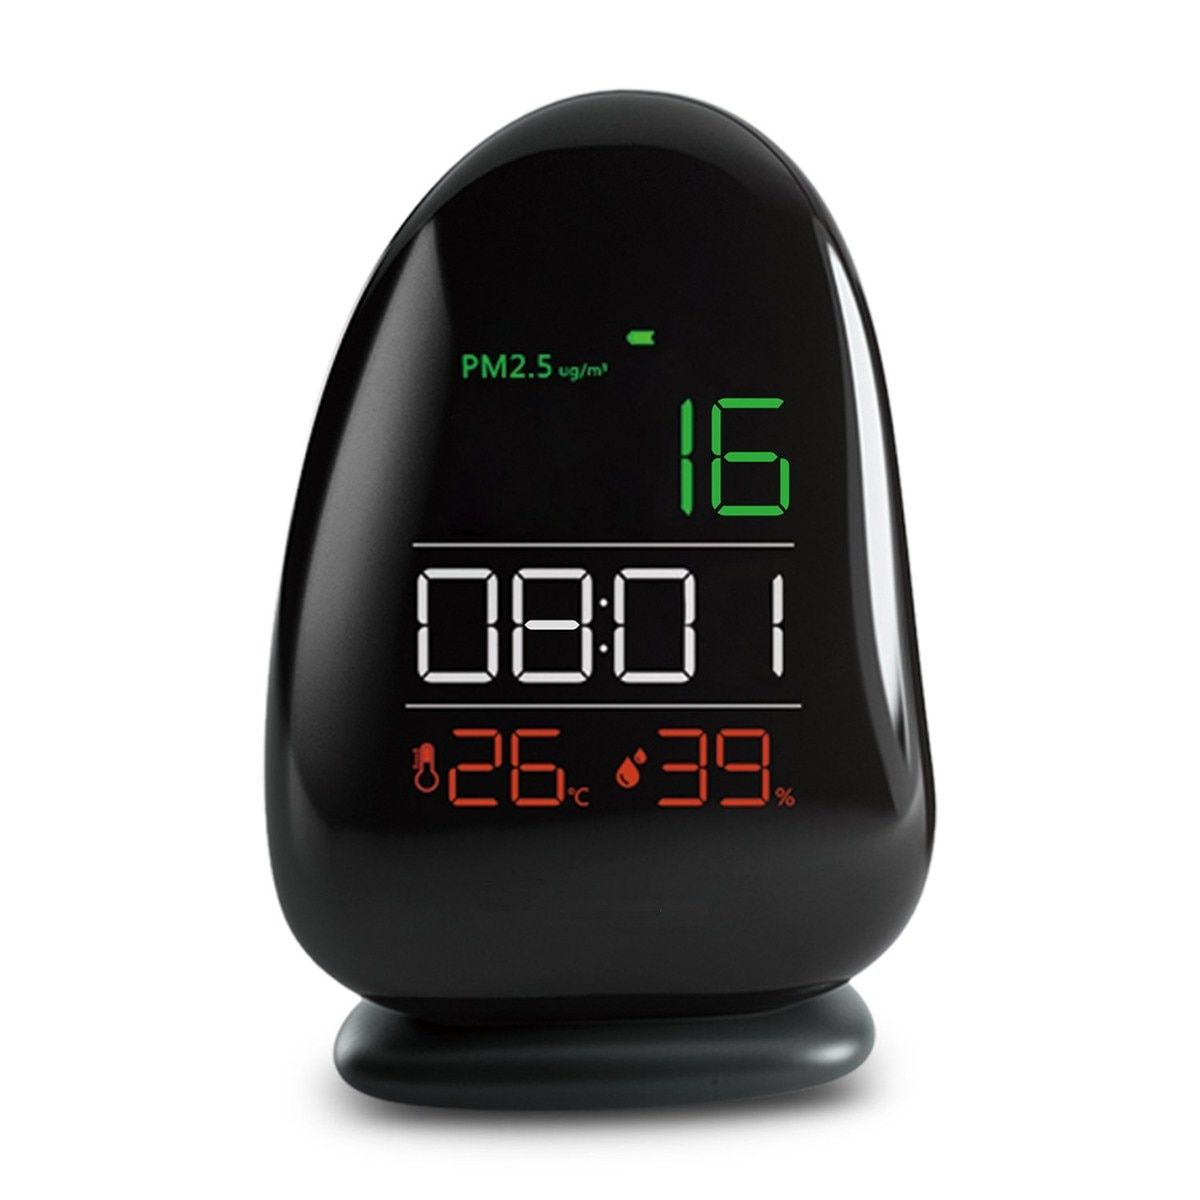 PM2.5 Laser Sensor Detector Air Quality Monitor Meter w/ Temperature/Level/RH humidity/Time Gas Analyzers For Home Office School